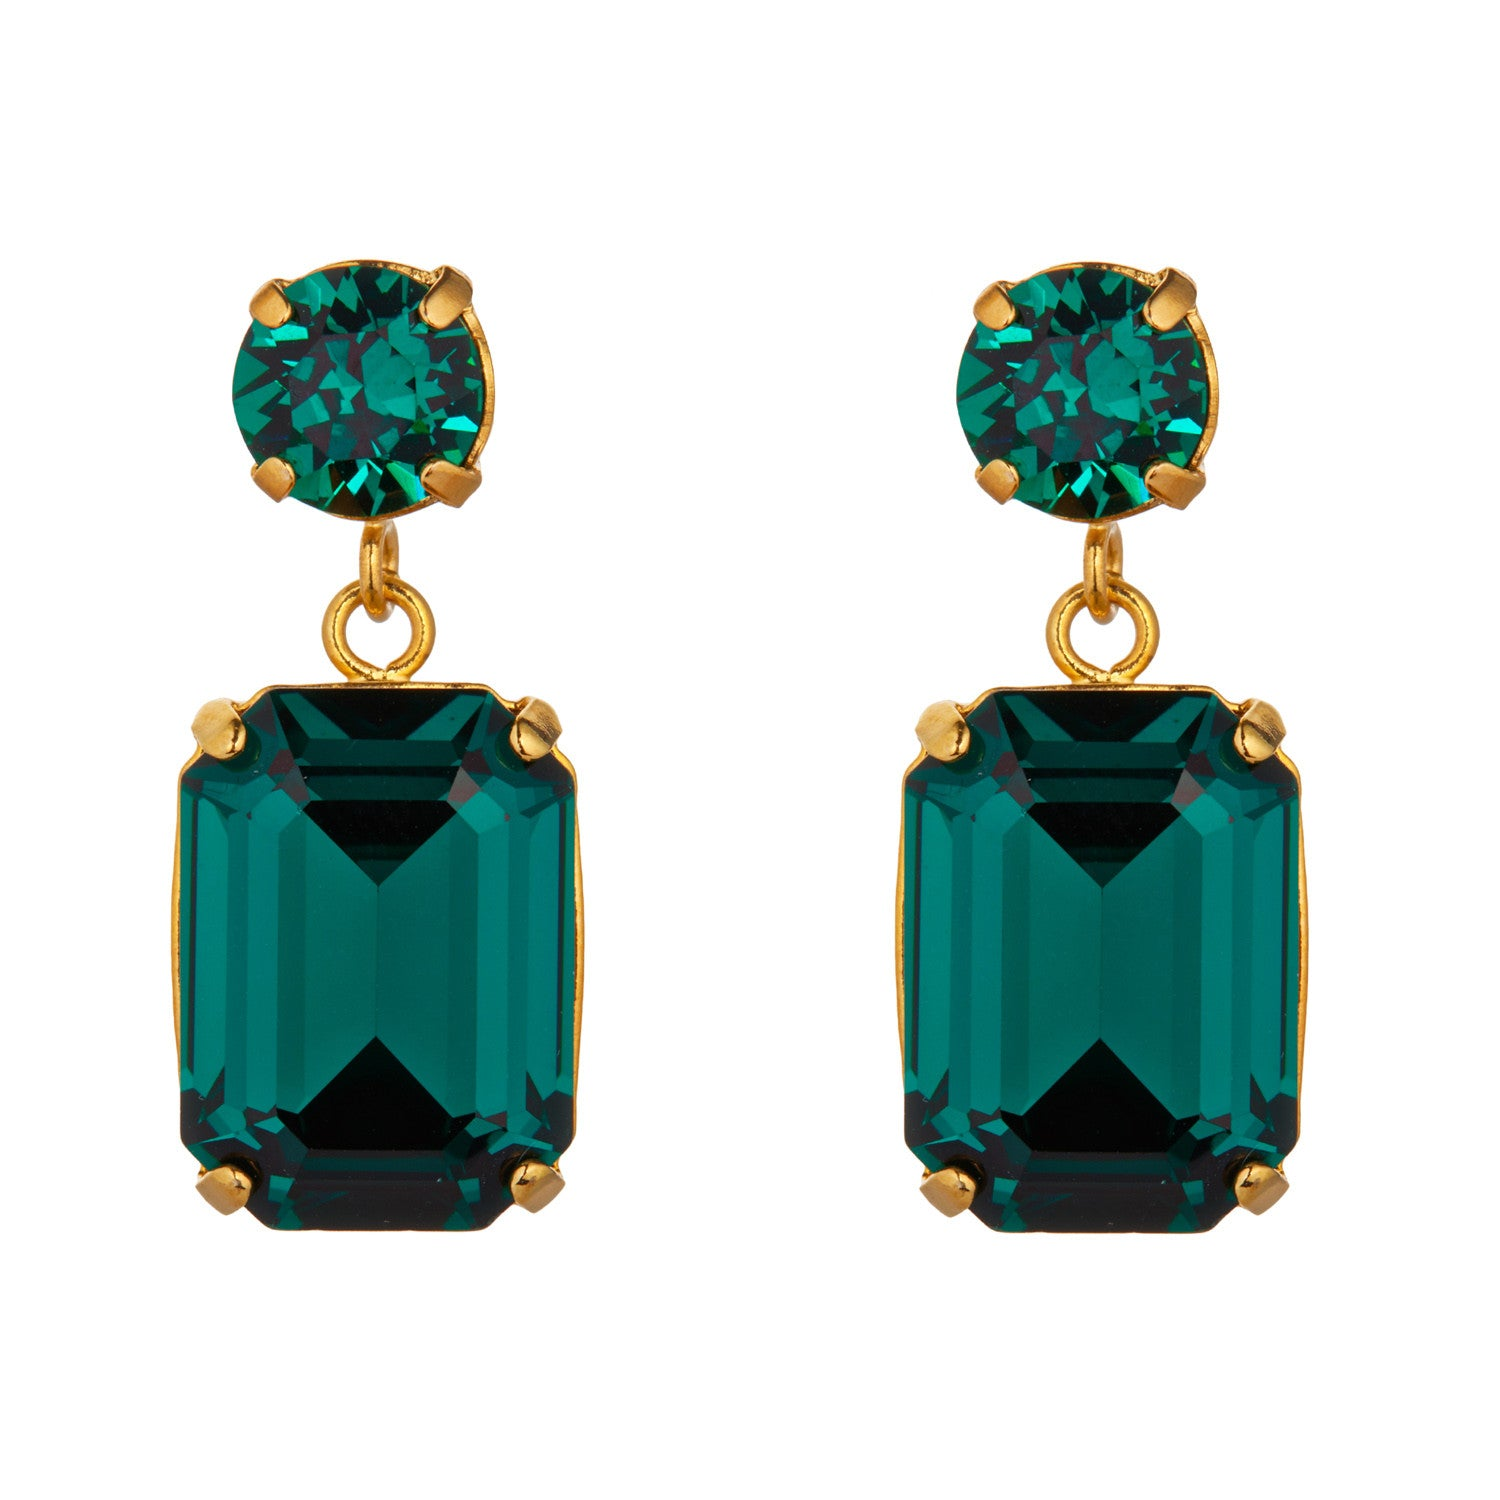 Emerald Swarovski Mini Slab Earrings by Merle O'Grady - MoMuse Jewellery